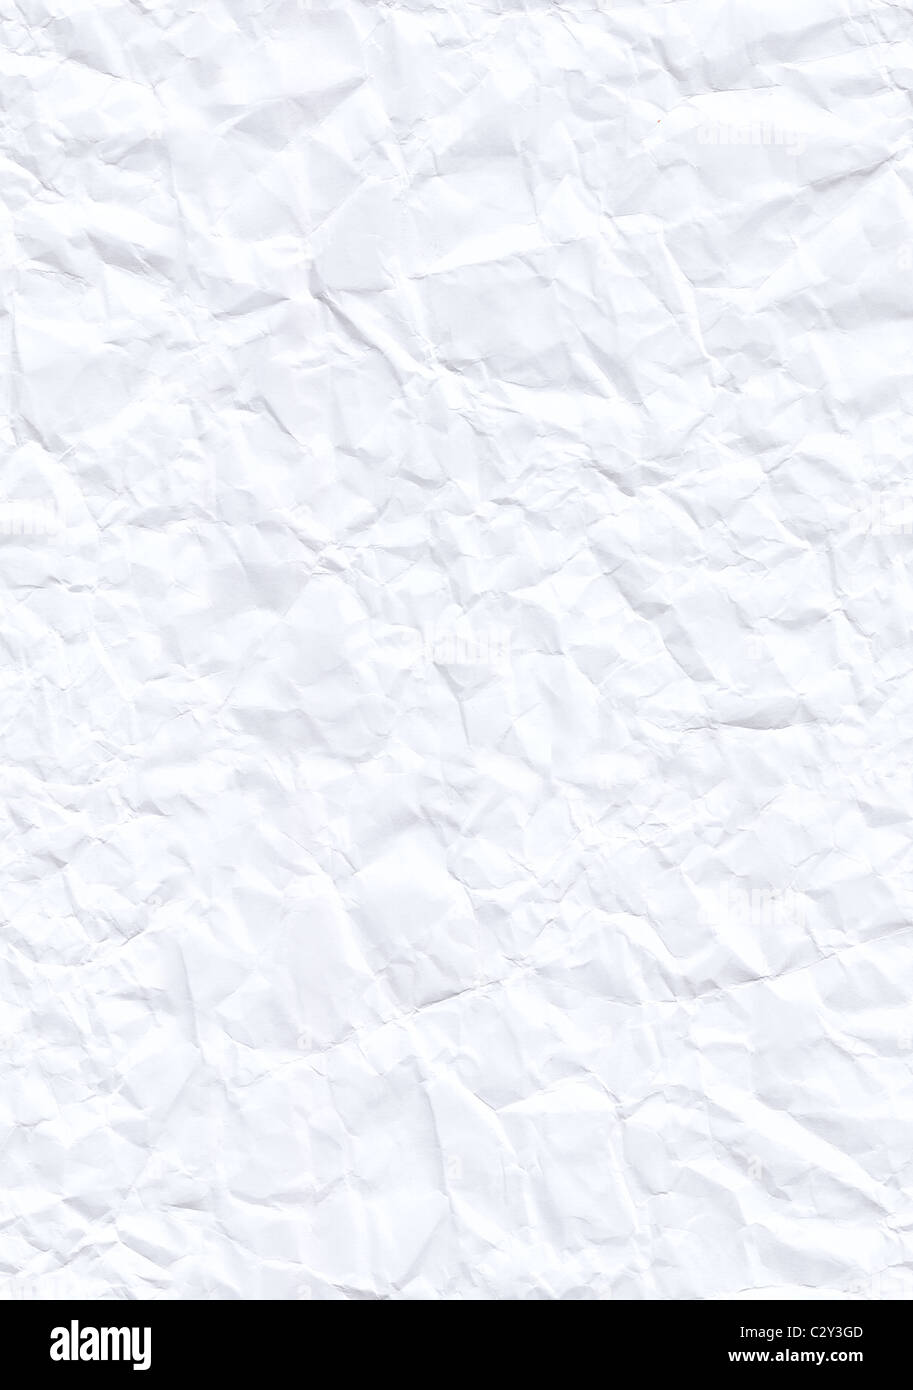 Creased white paper texture. Hi-res scan. Seamless texture perfect for tiling background - Stock Image